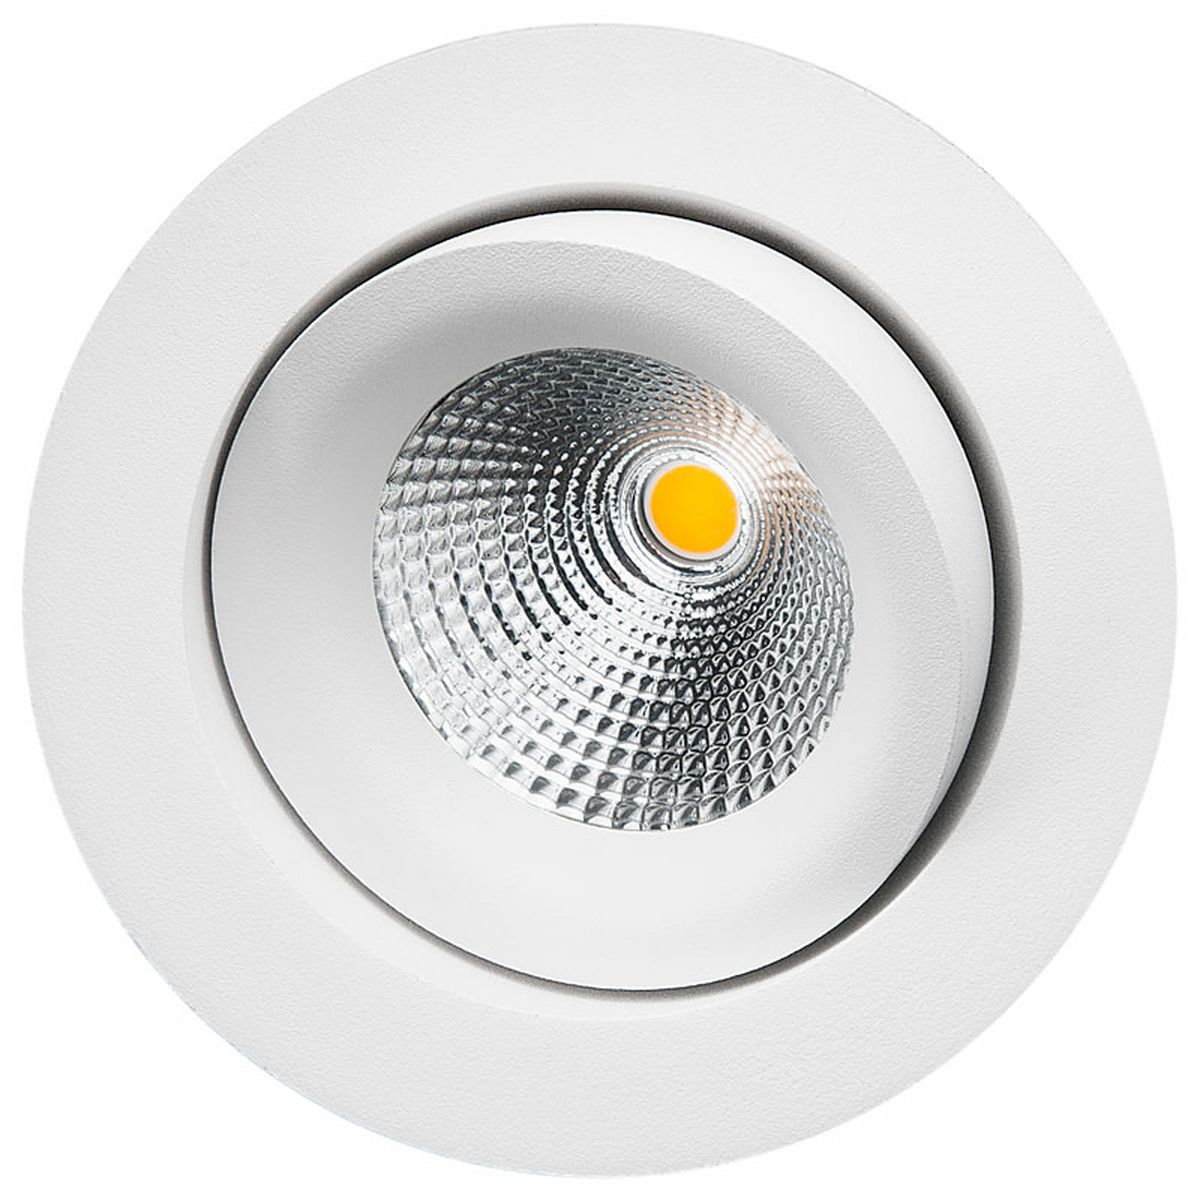 Sg Verlichting Sg Led Spot 16001200 Intercaza By Lucien Zambon